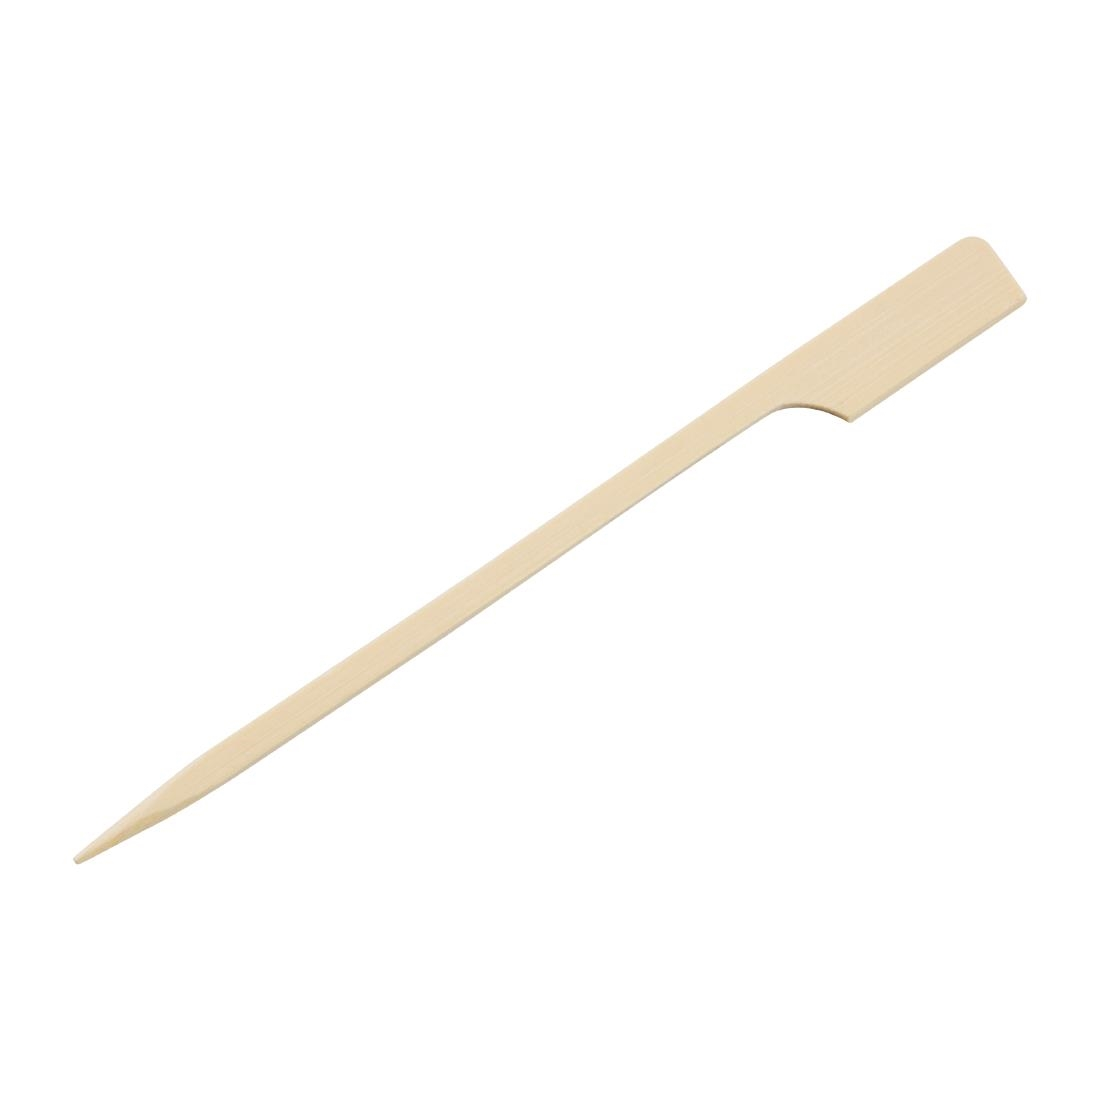 Fiesta Green Biodegradable Bamboo Paddle Skewers 120mm Pack of 100